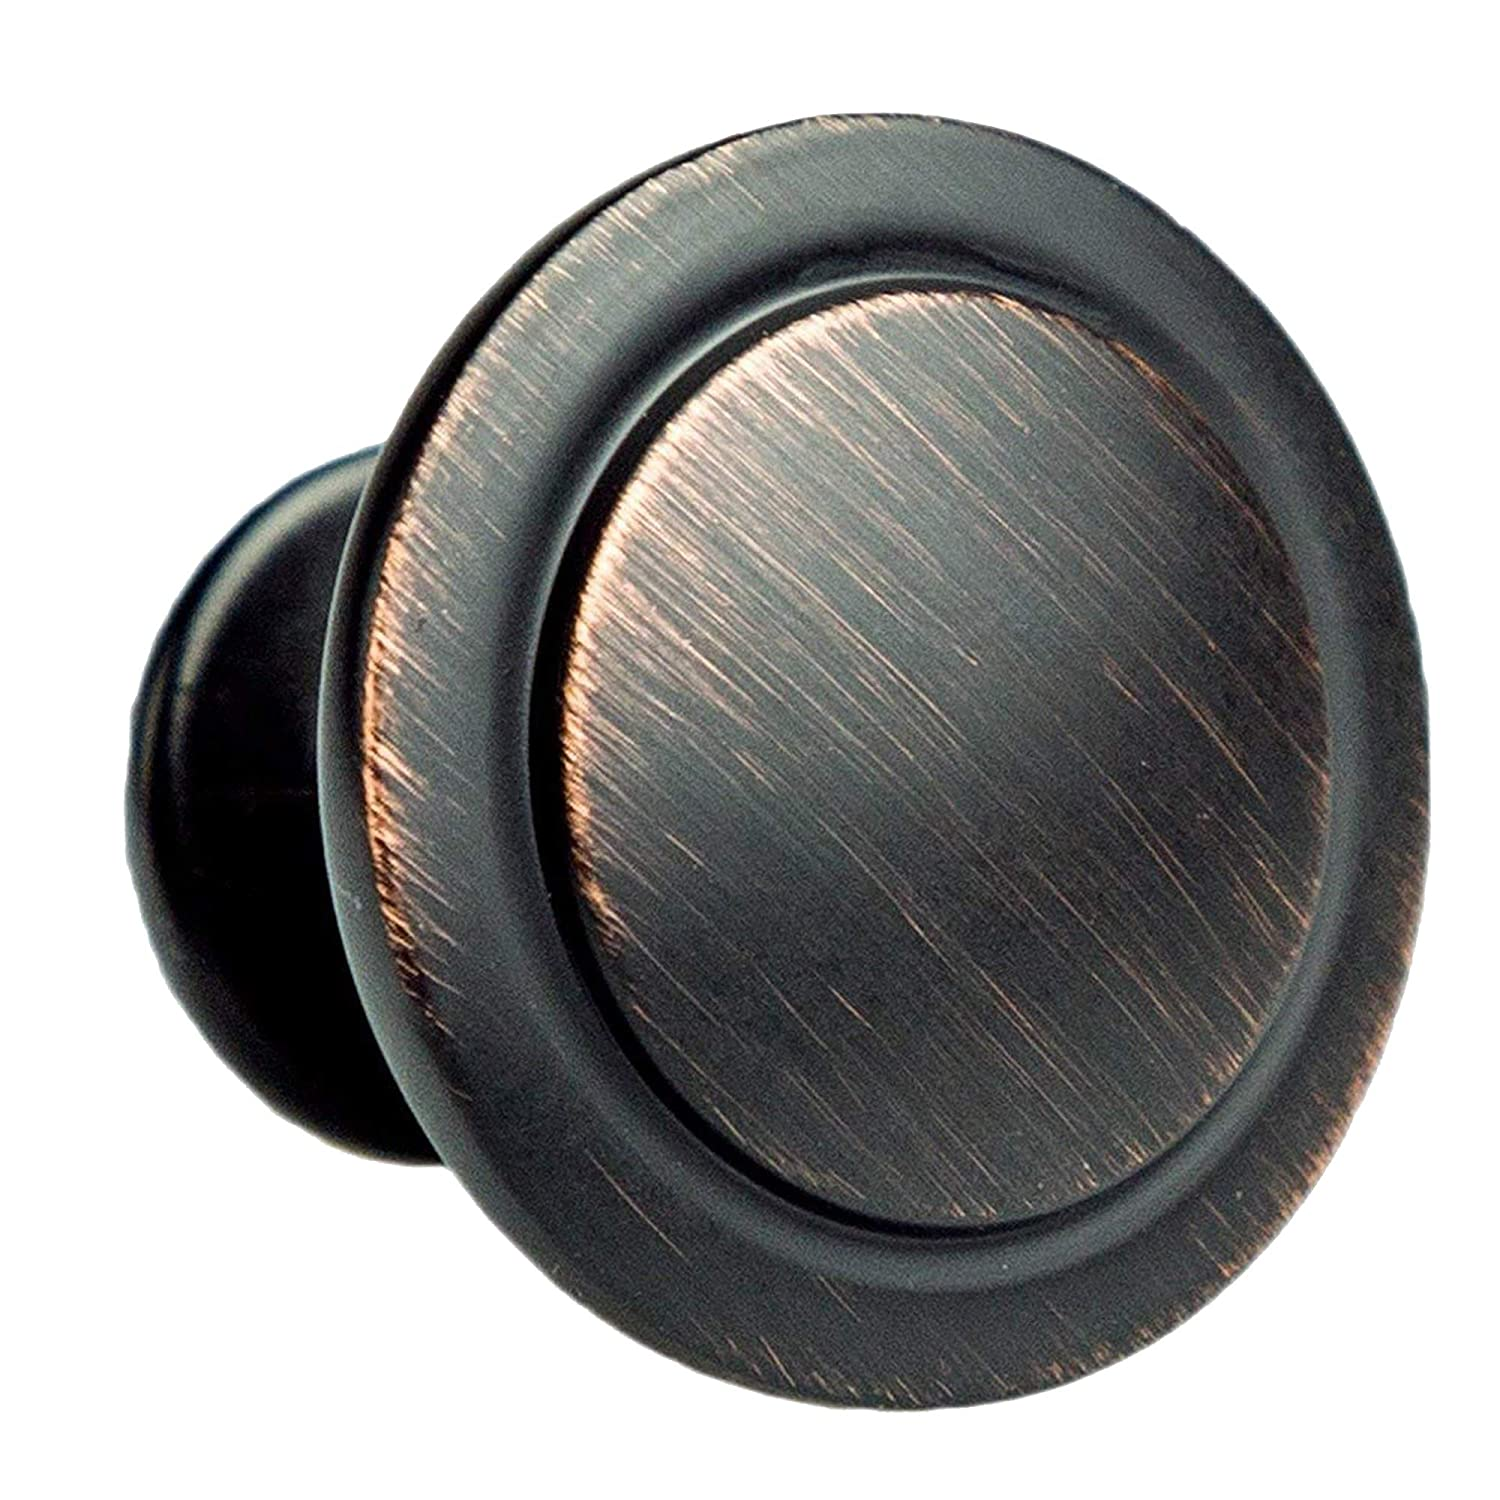 Oil Rubbed Bronze Kitchen Cabinet Knobs - 1 1/4 Inch Round Drawer Handles - 25 Pack of Kitchen Cabinet Hardware